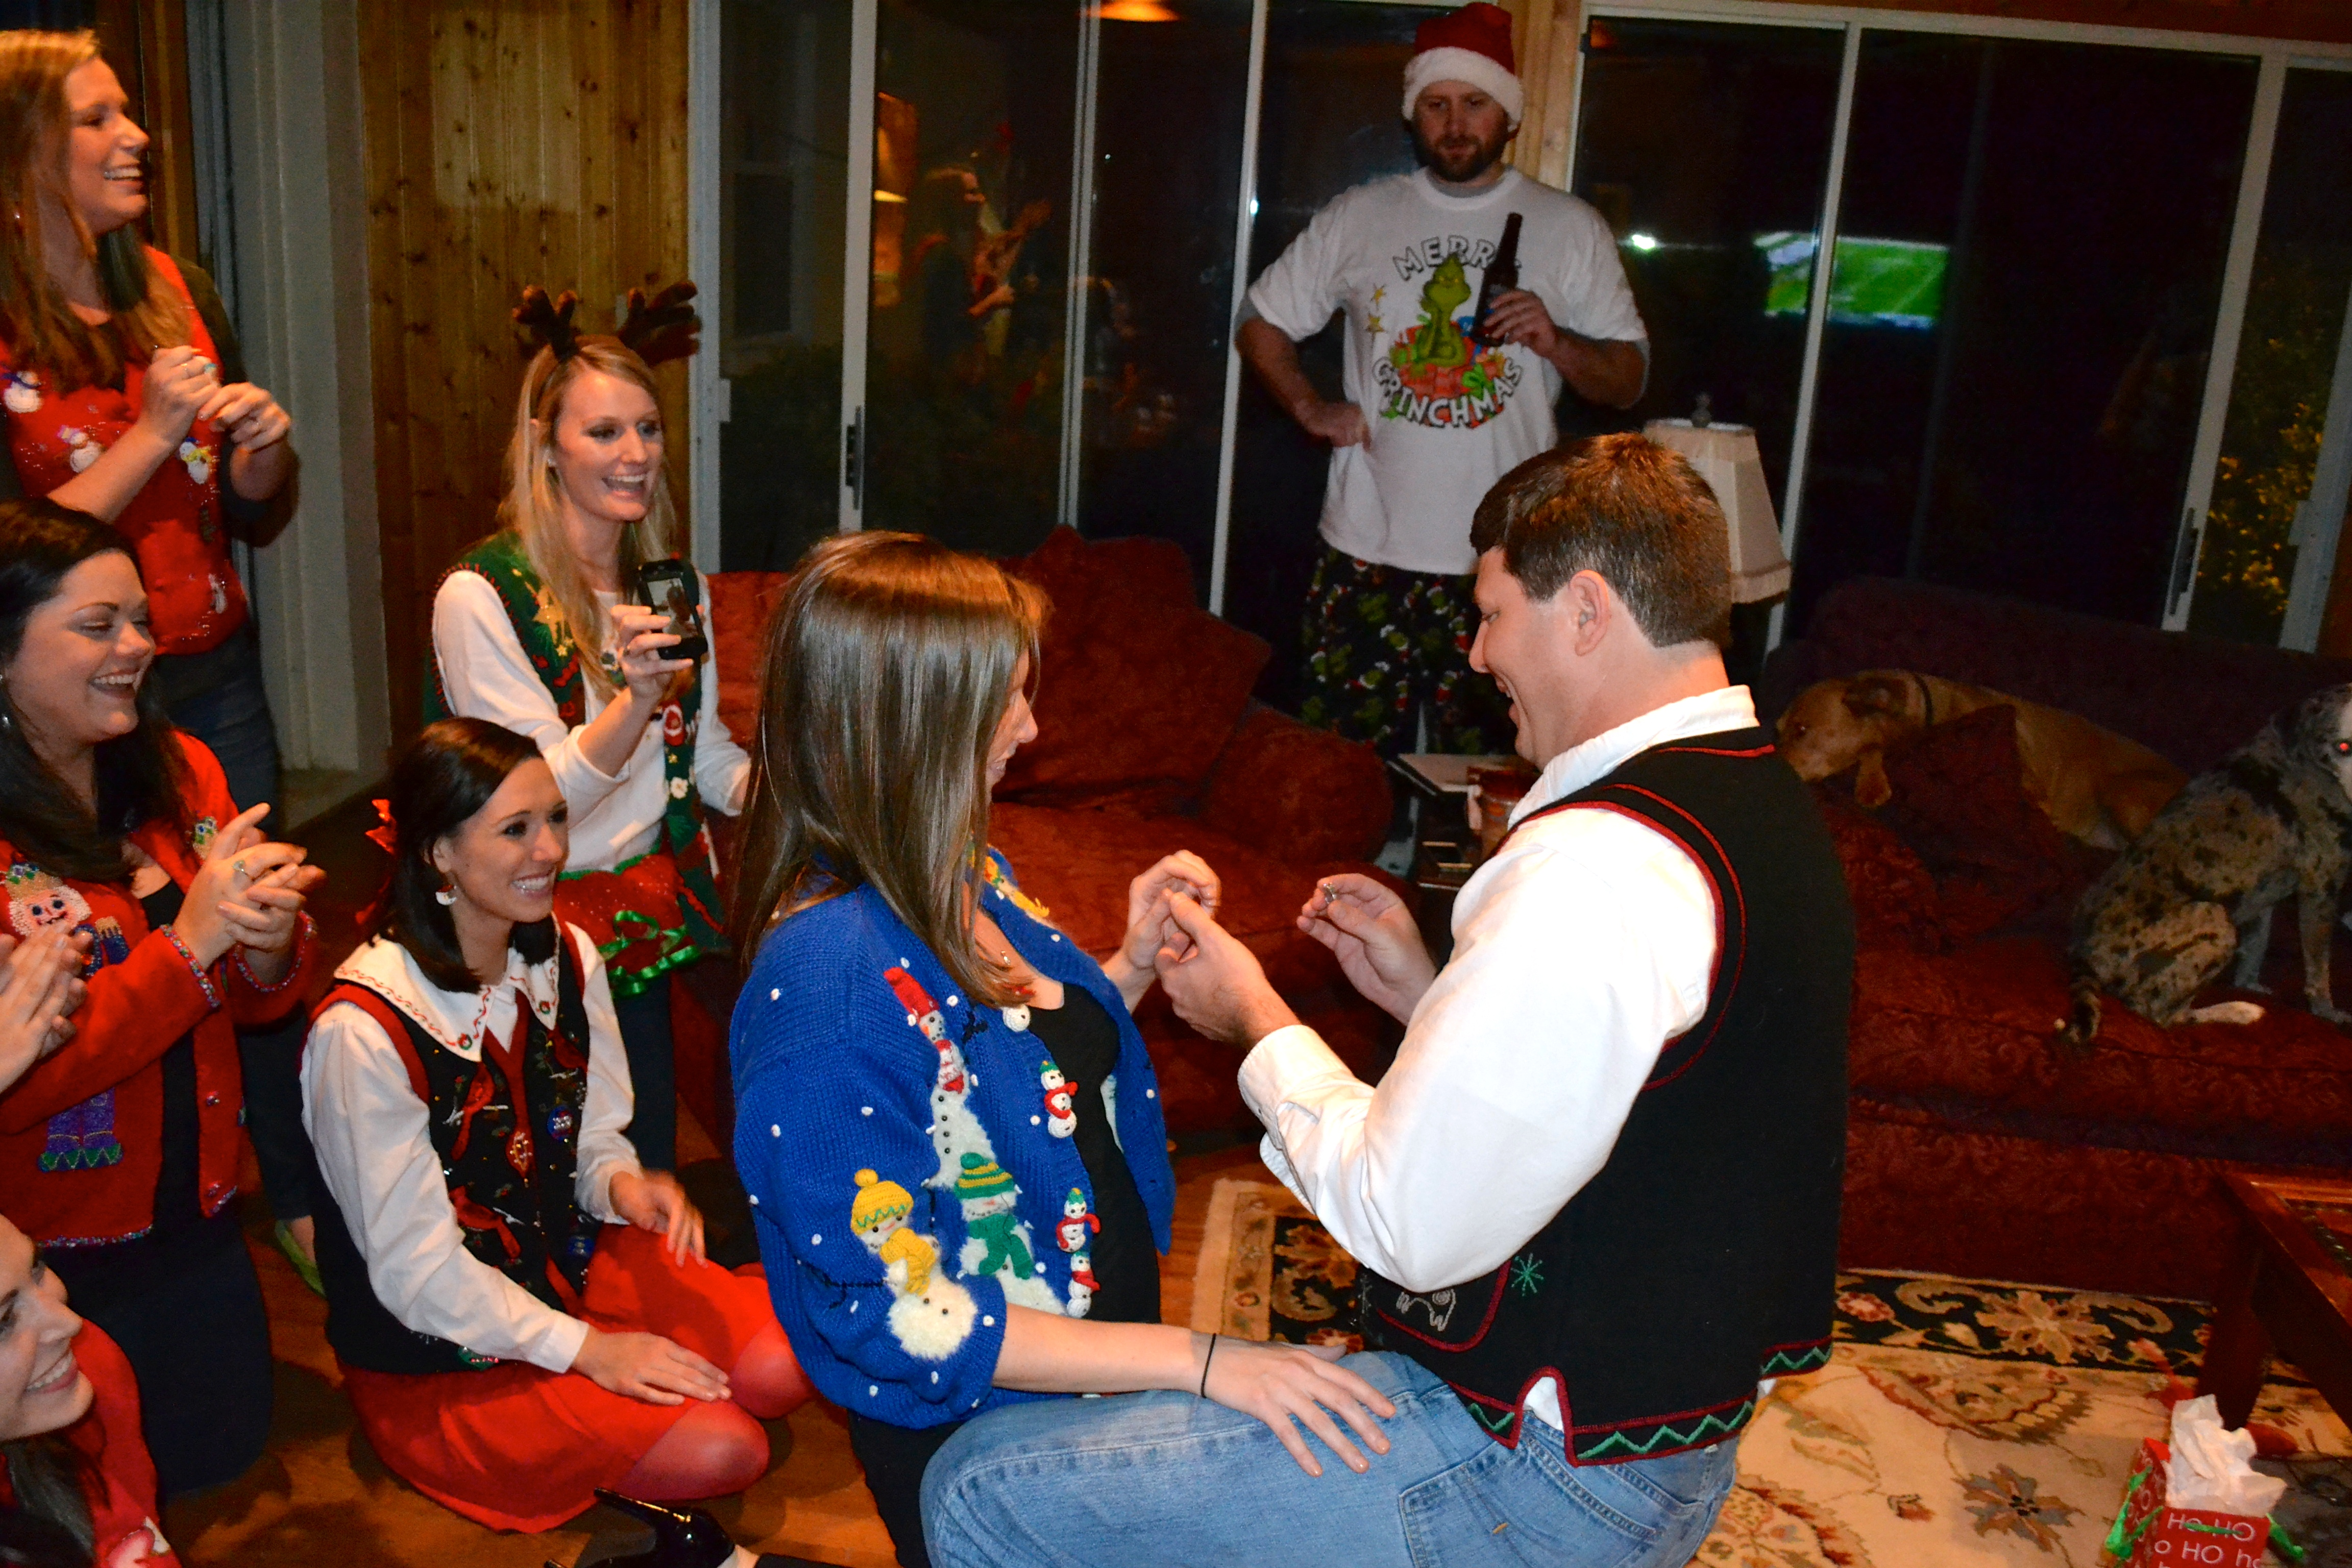 Image 3 of Meredith and Josh | Christmas Party Proposal